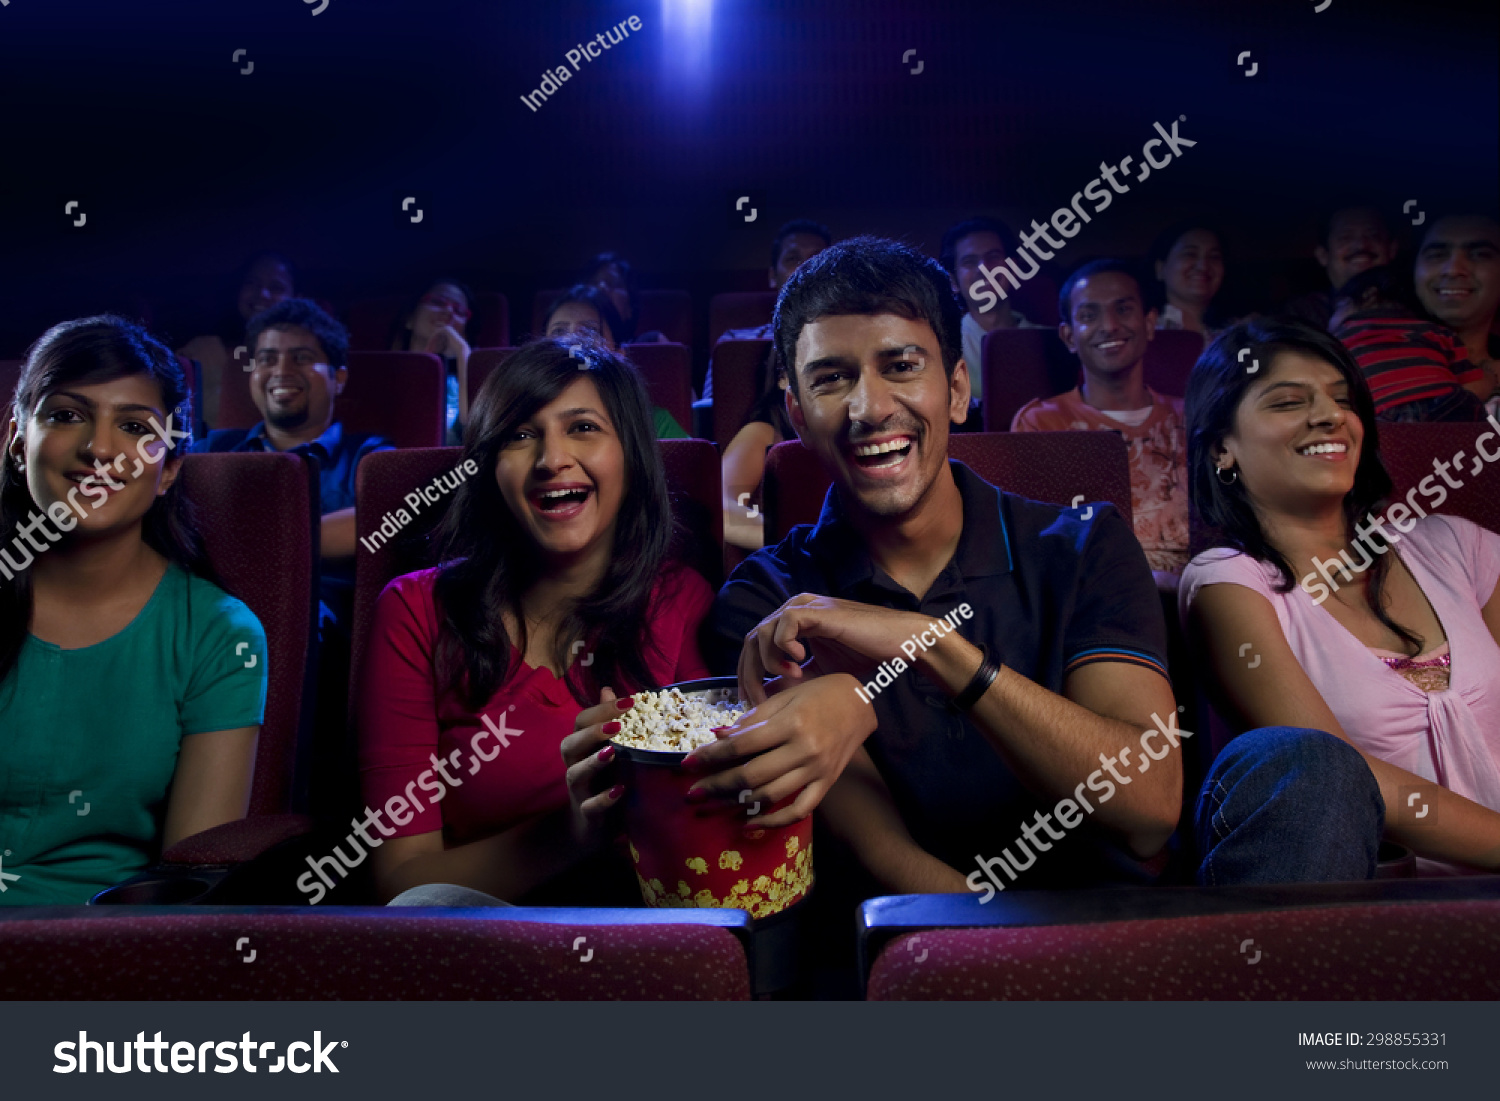 People watching a movie stock photo 298855331 shutterstock for People watching